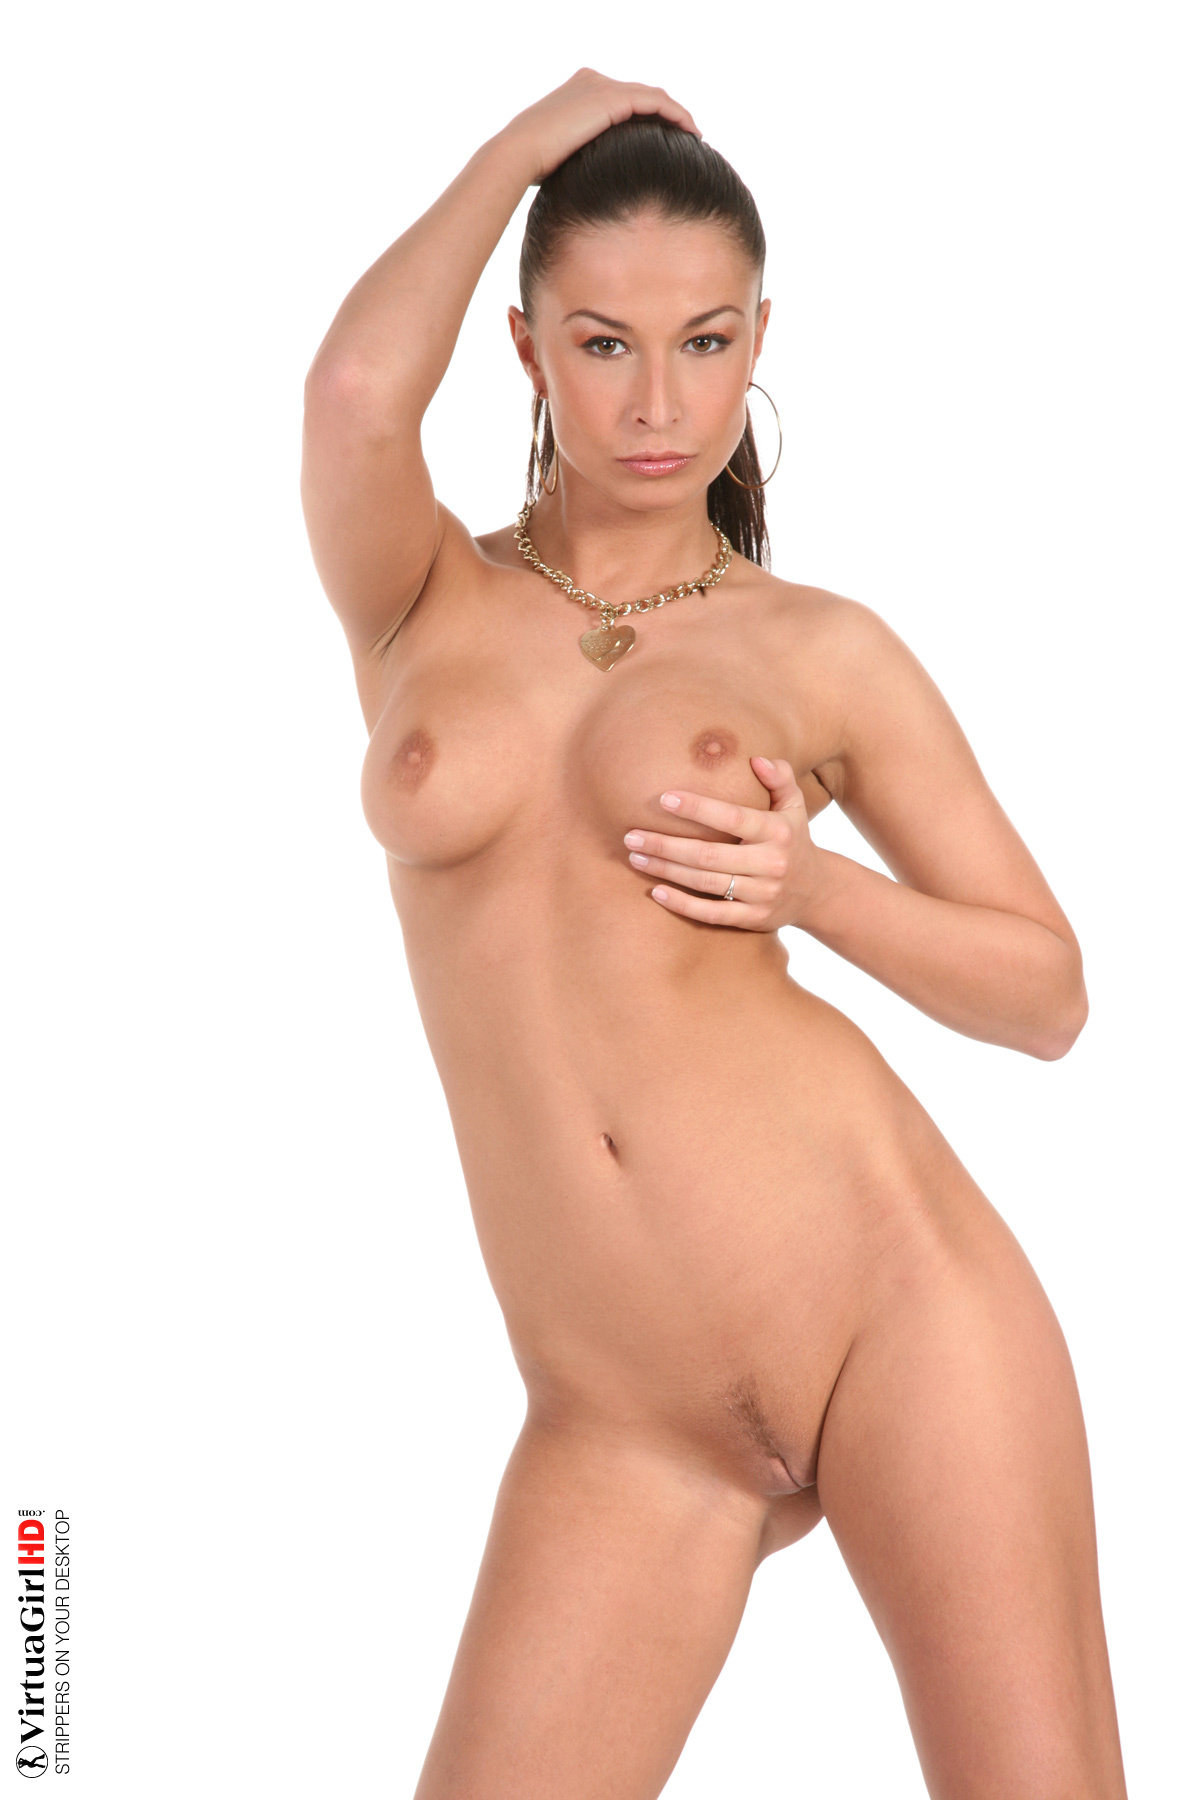 naked girl wall paper